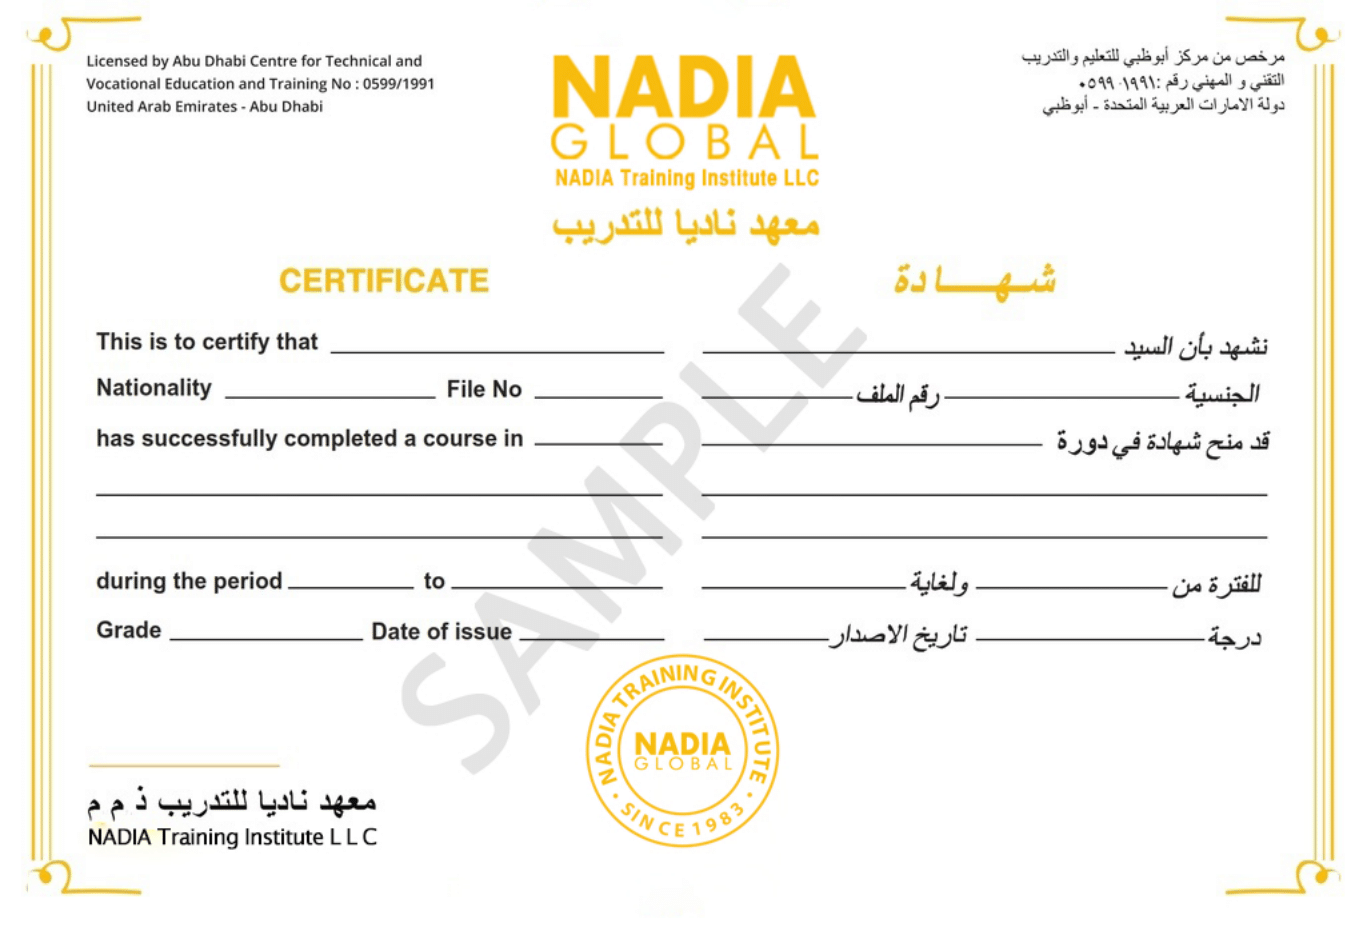 auh_cert_layout_pdf-with watermark-1